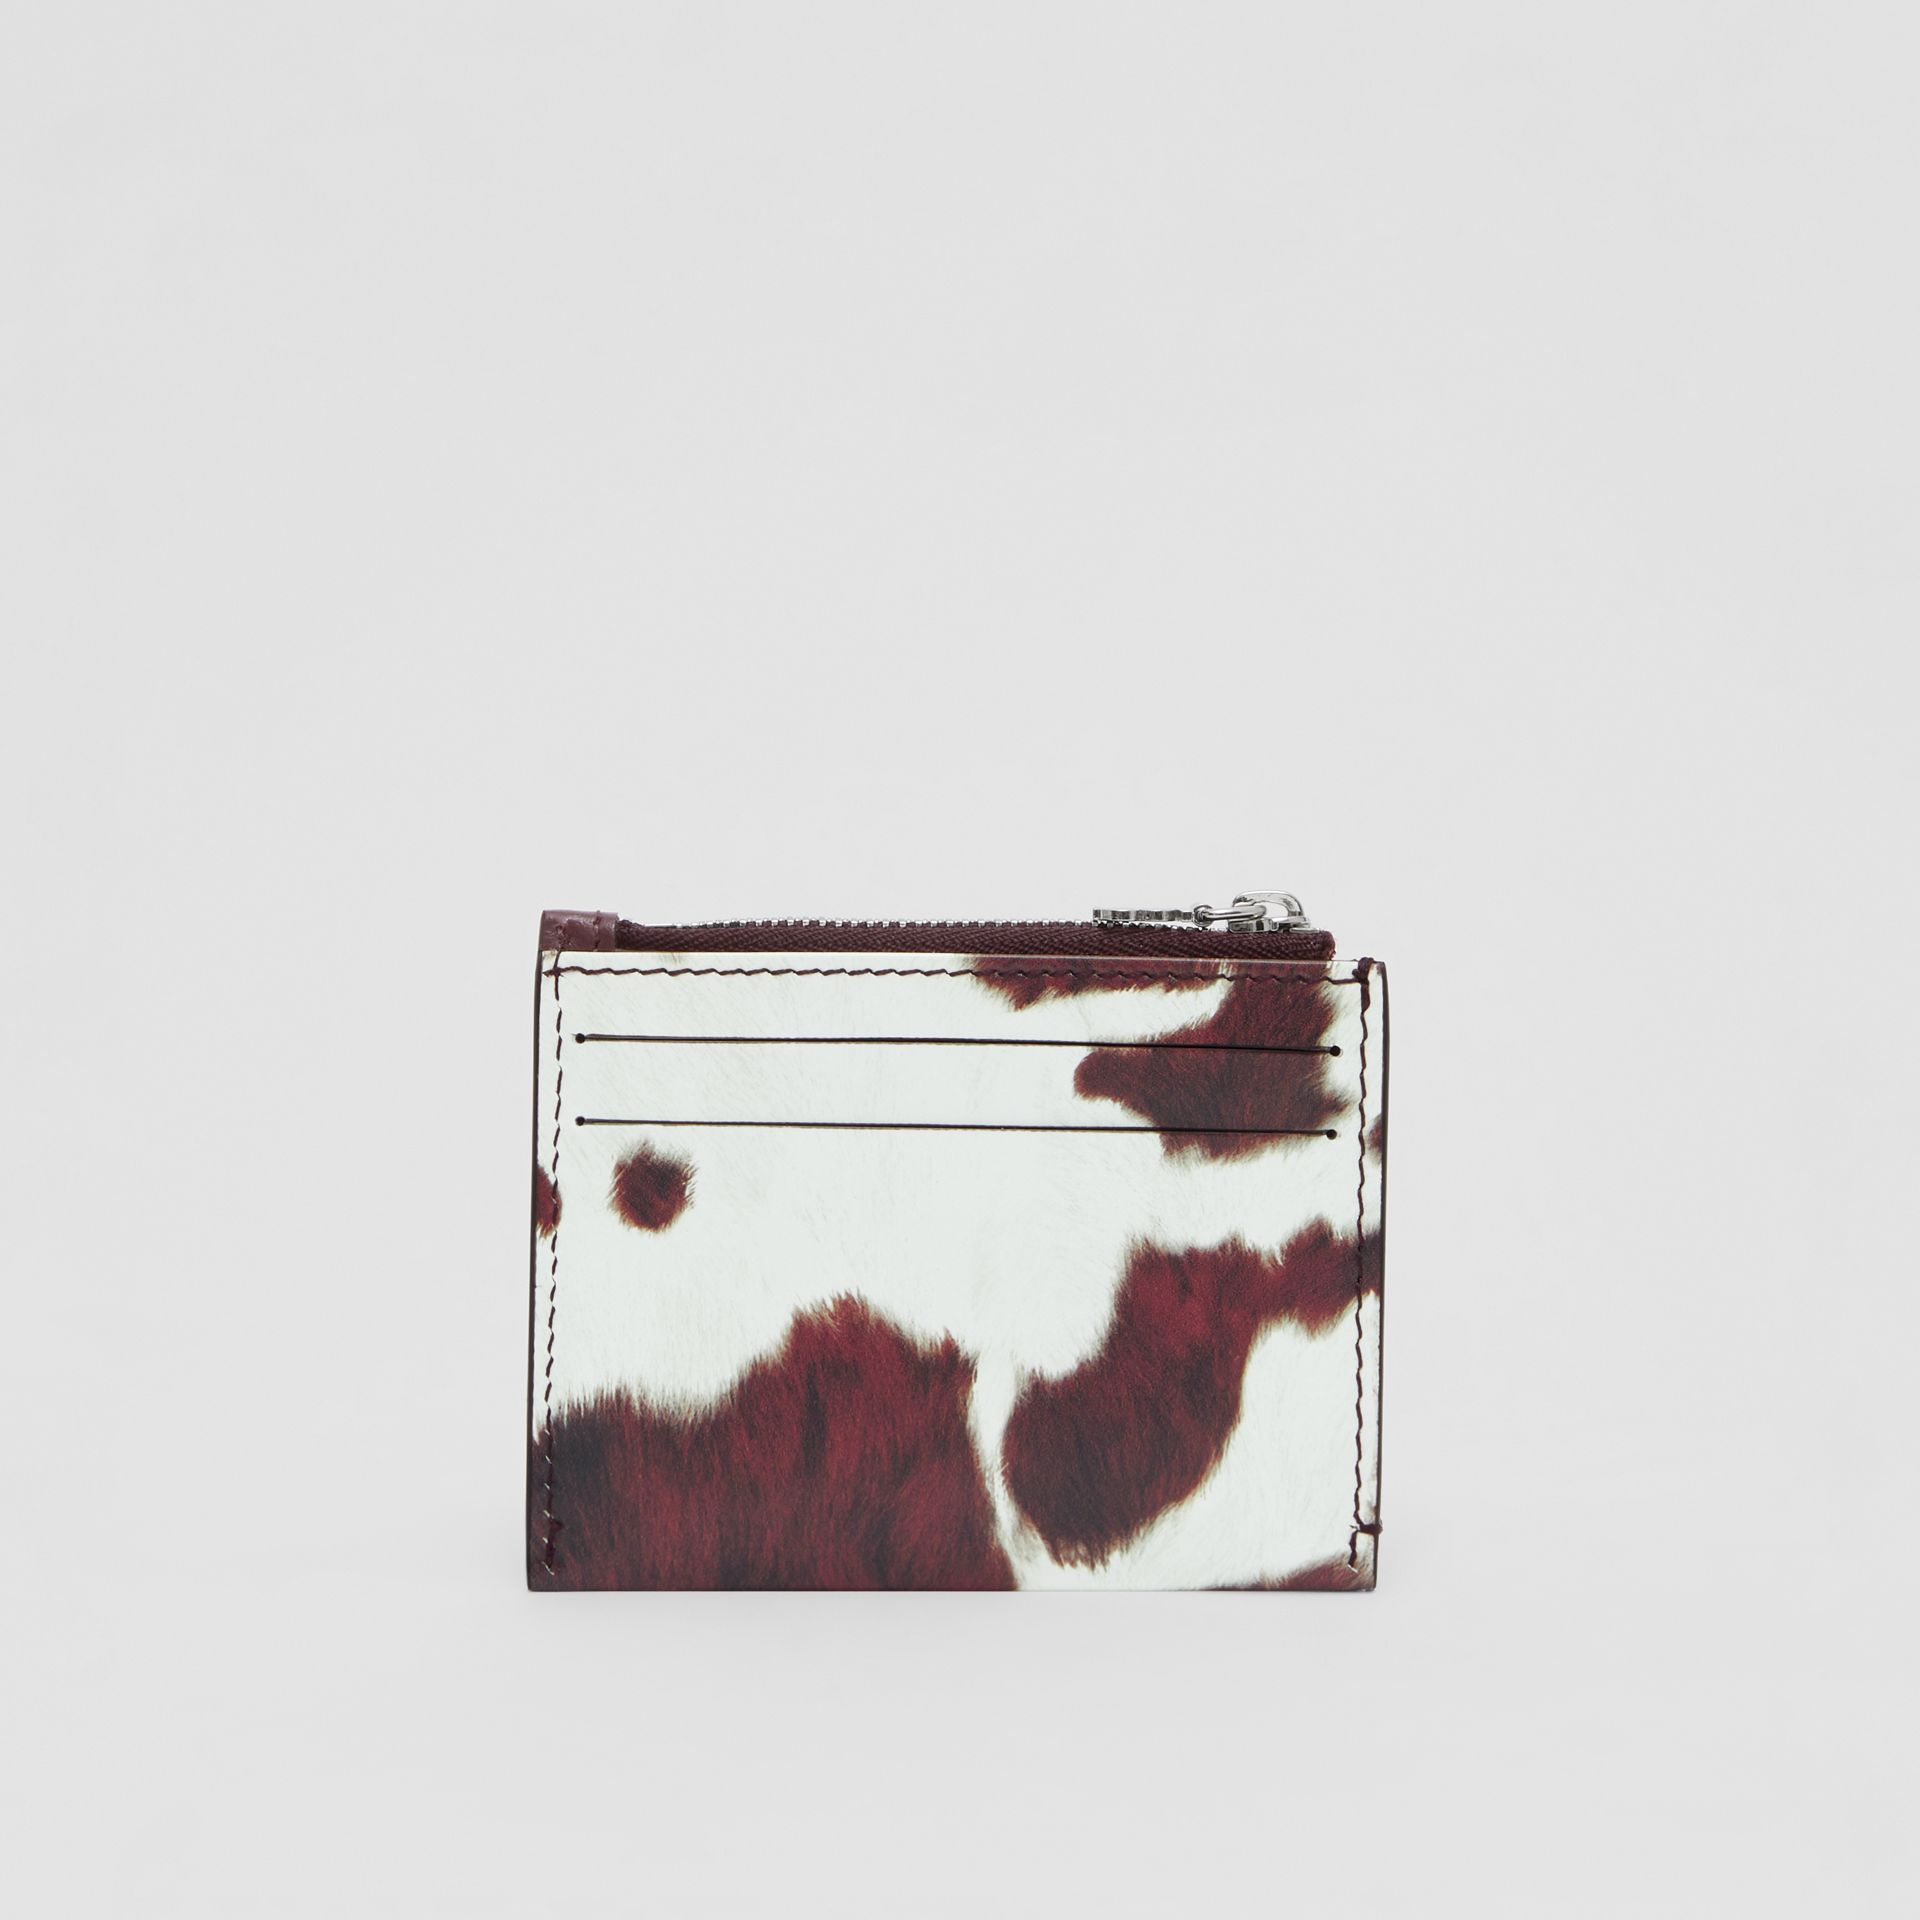 Cow Print Leather Zip Card Case in Mahogany - Women | Burberry - gallery image 5